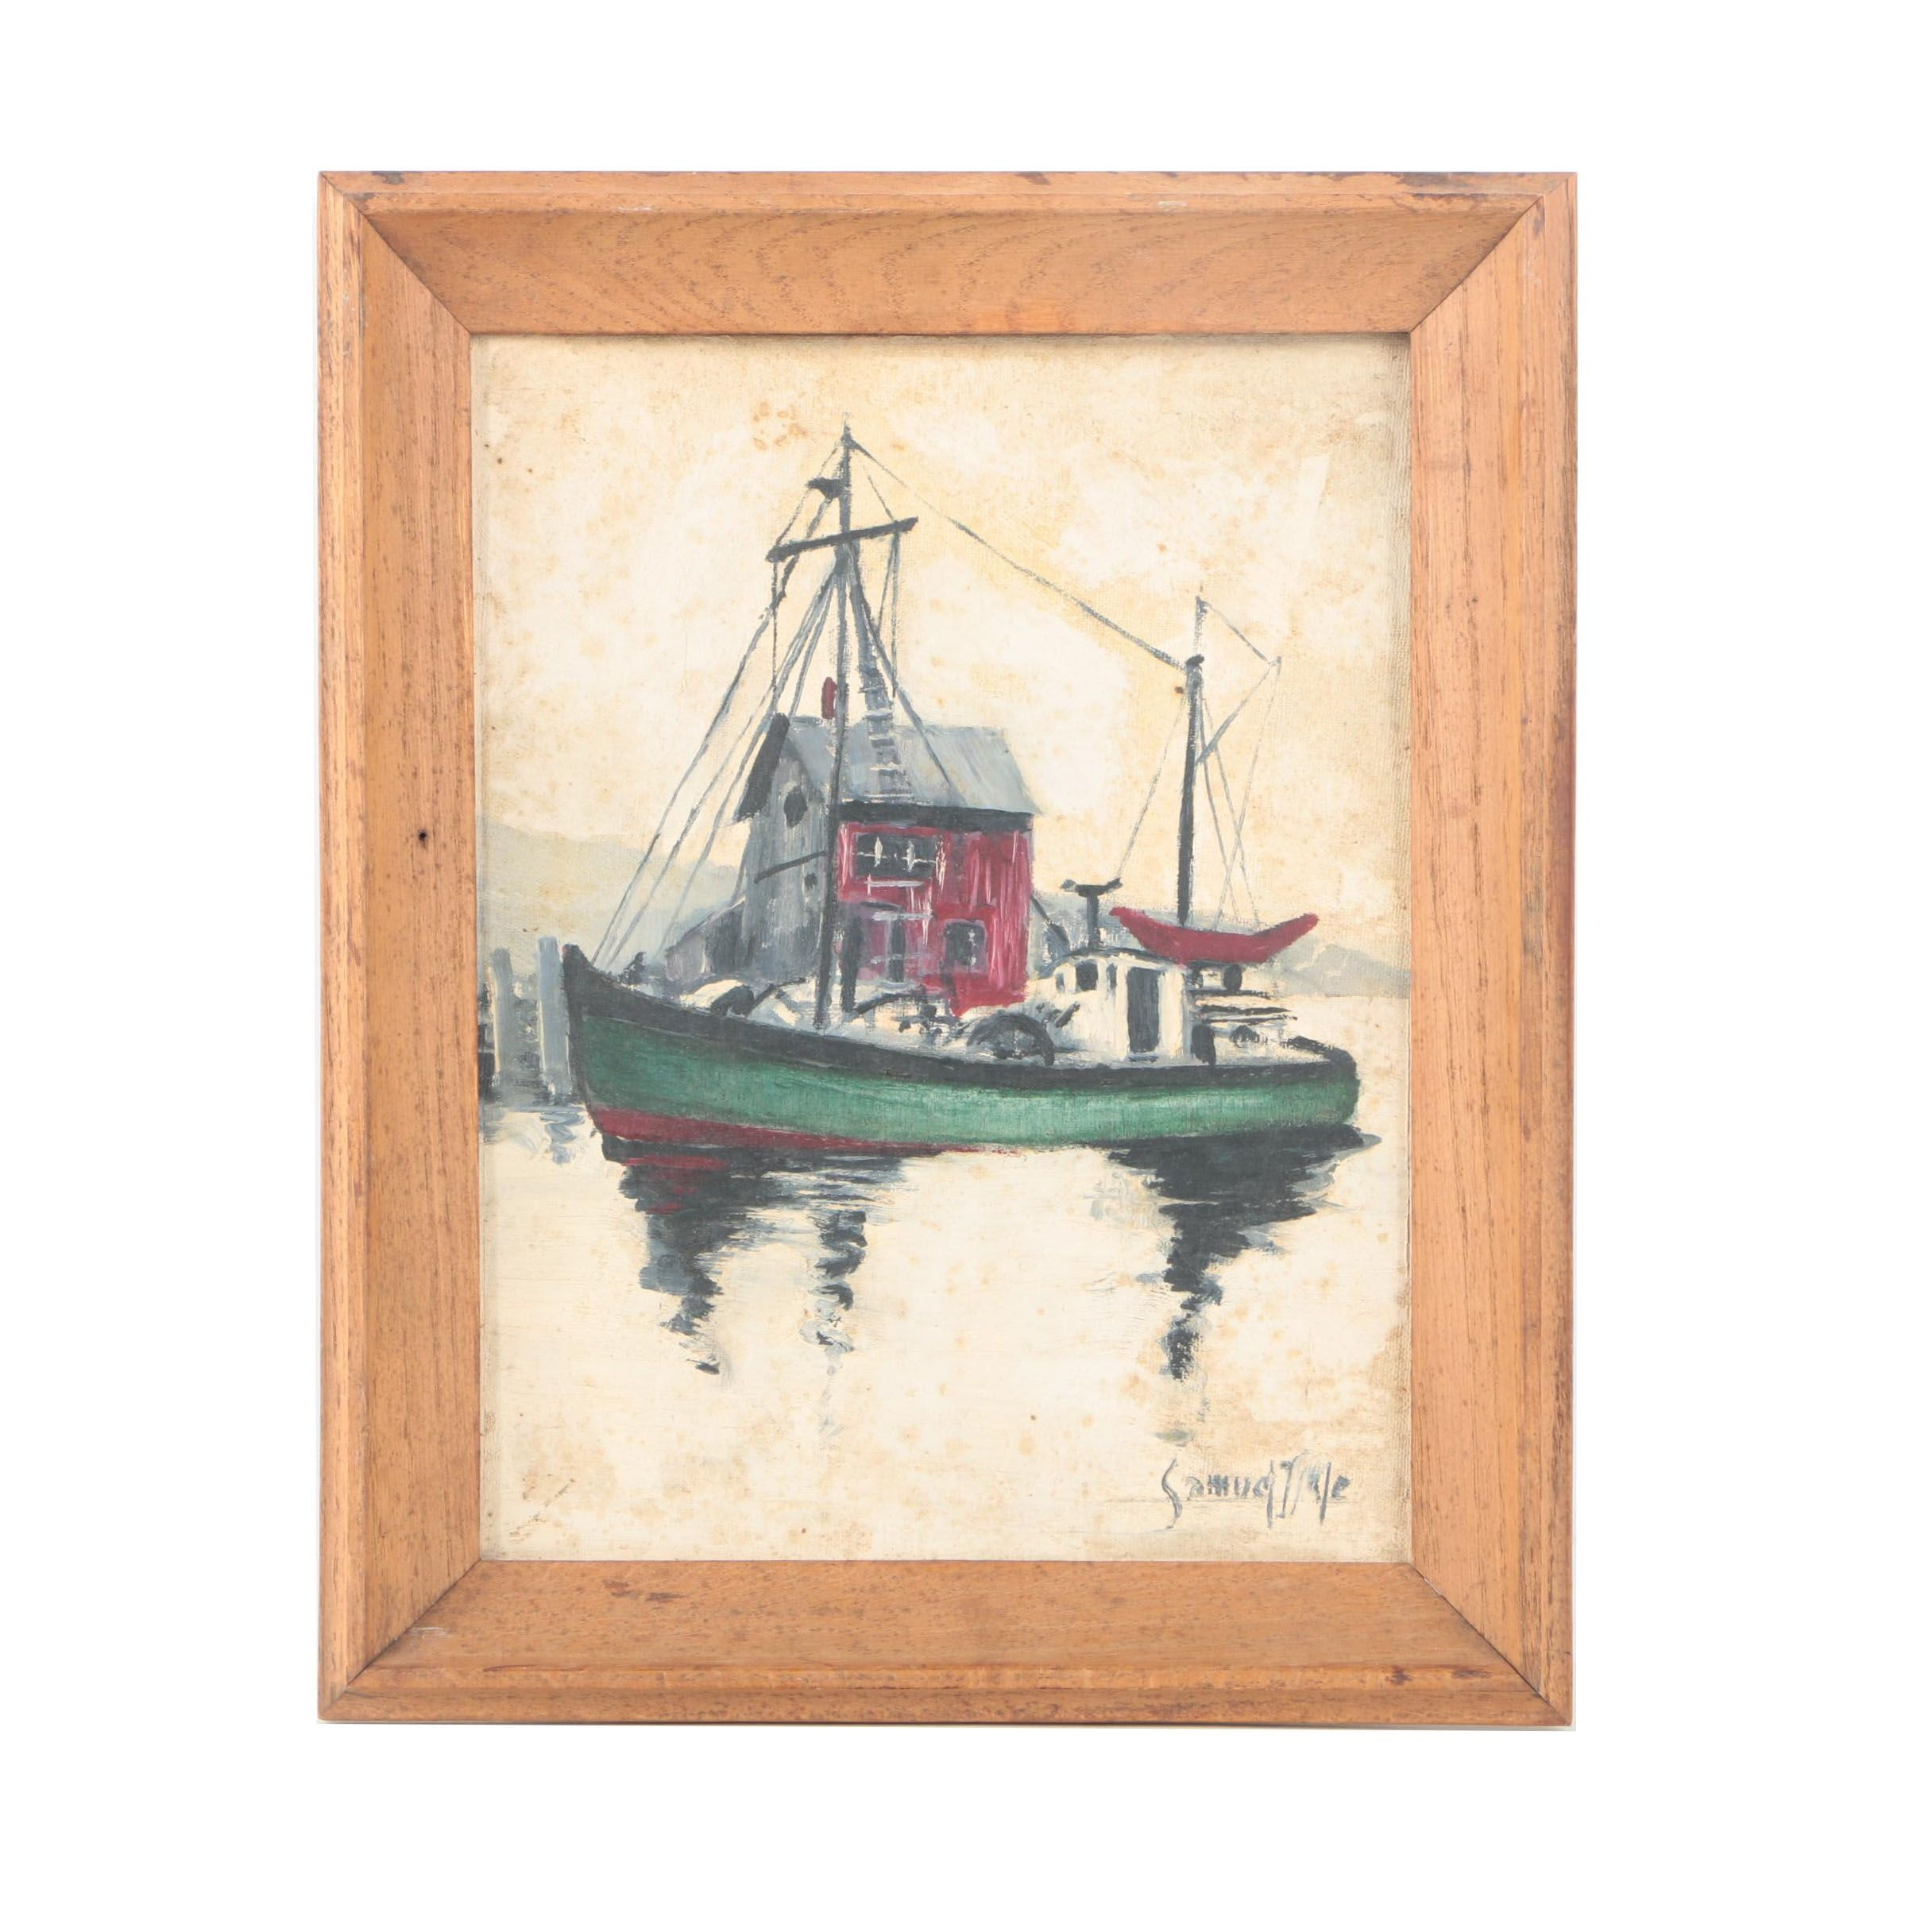 Oil on Canvas Board Painting of a Boat